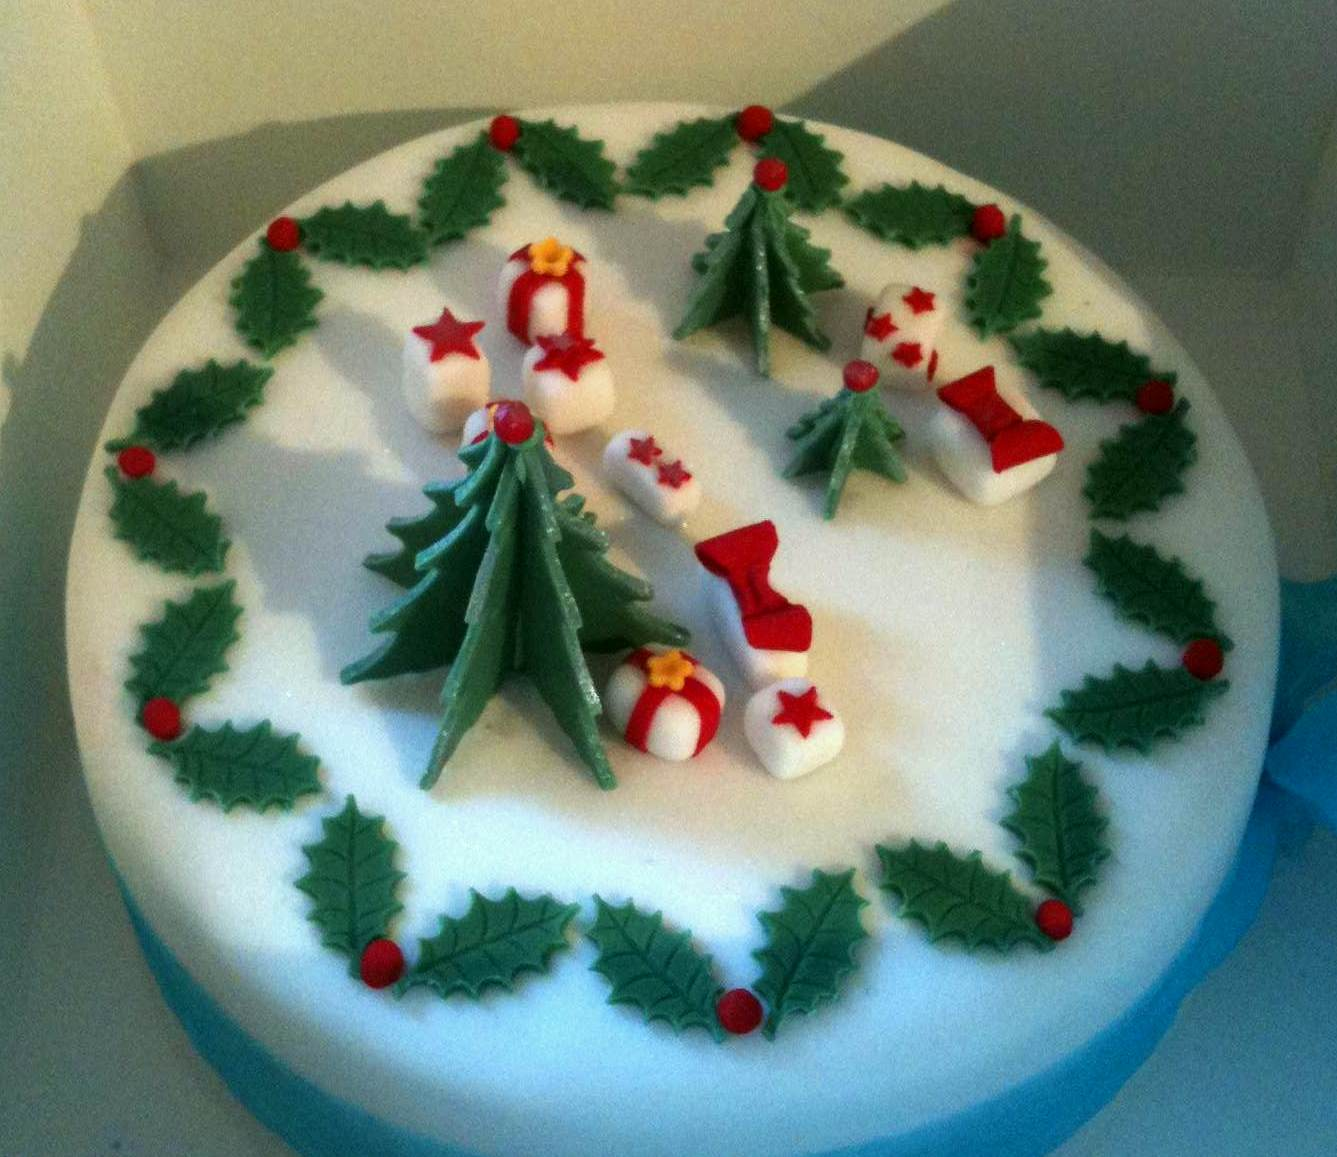 Christmas Cake Design Pictures : PicturesPool: Christmas Cakes Pictures Christmas Cakes ...